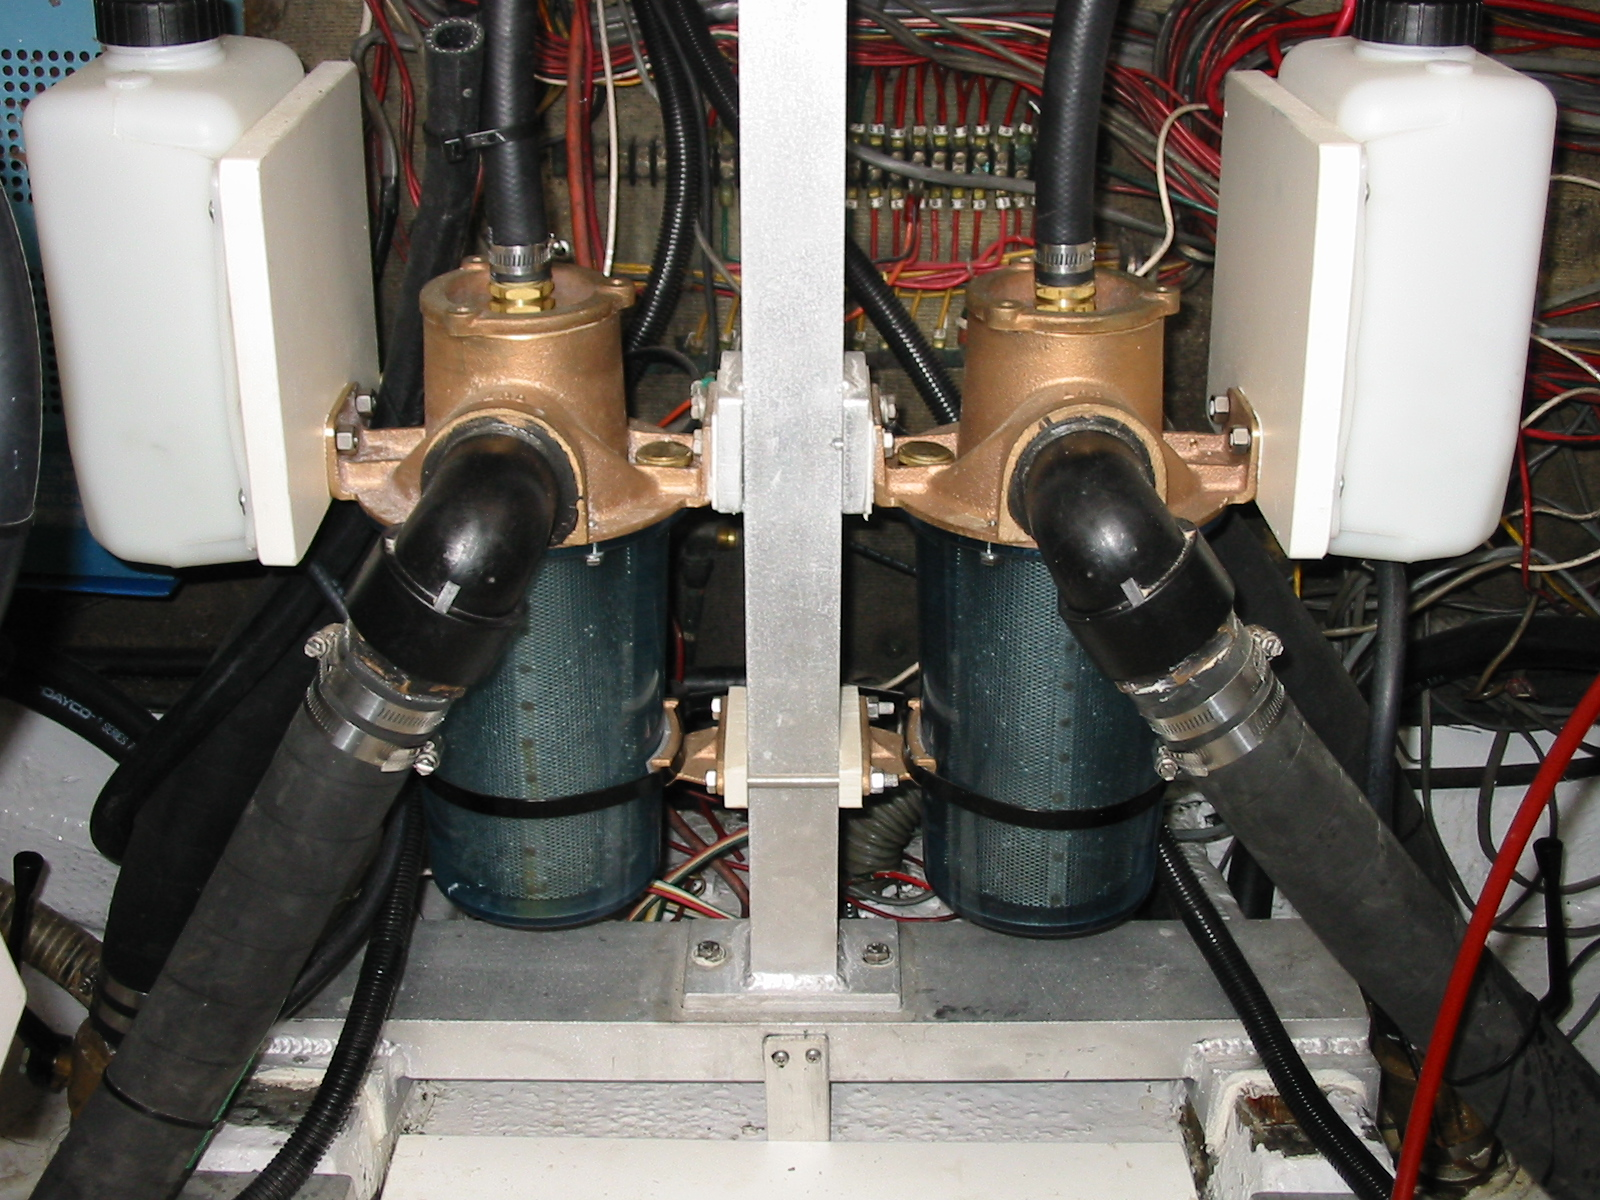 Sea strainers, deck support and coolant overflow bottles tucked in a small area.